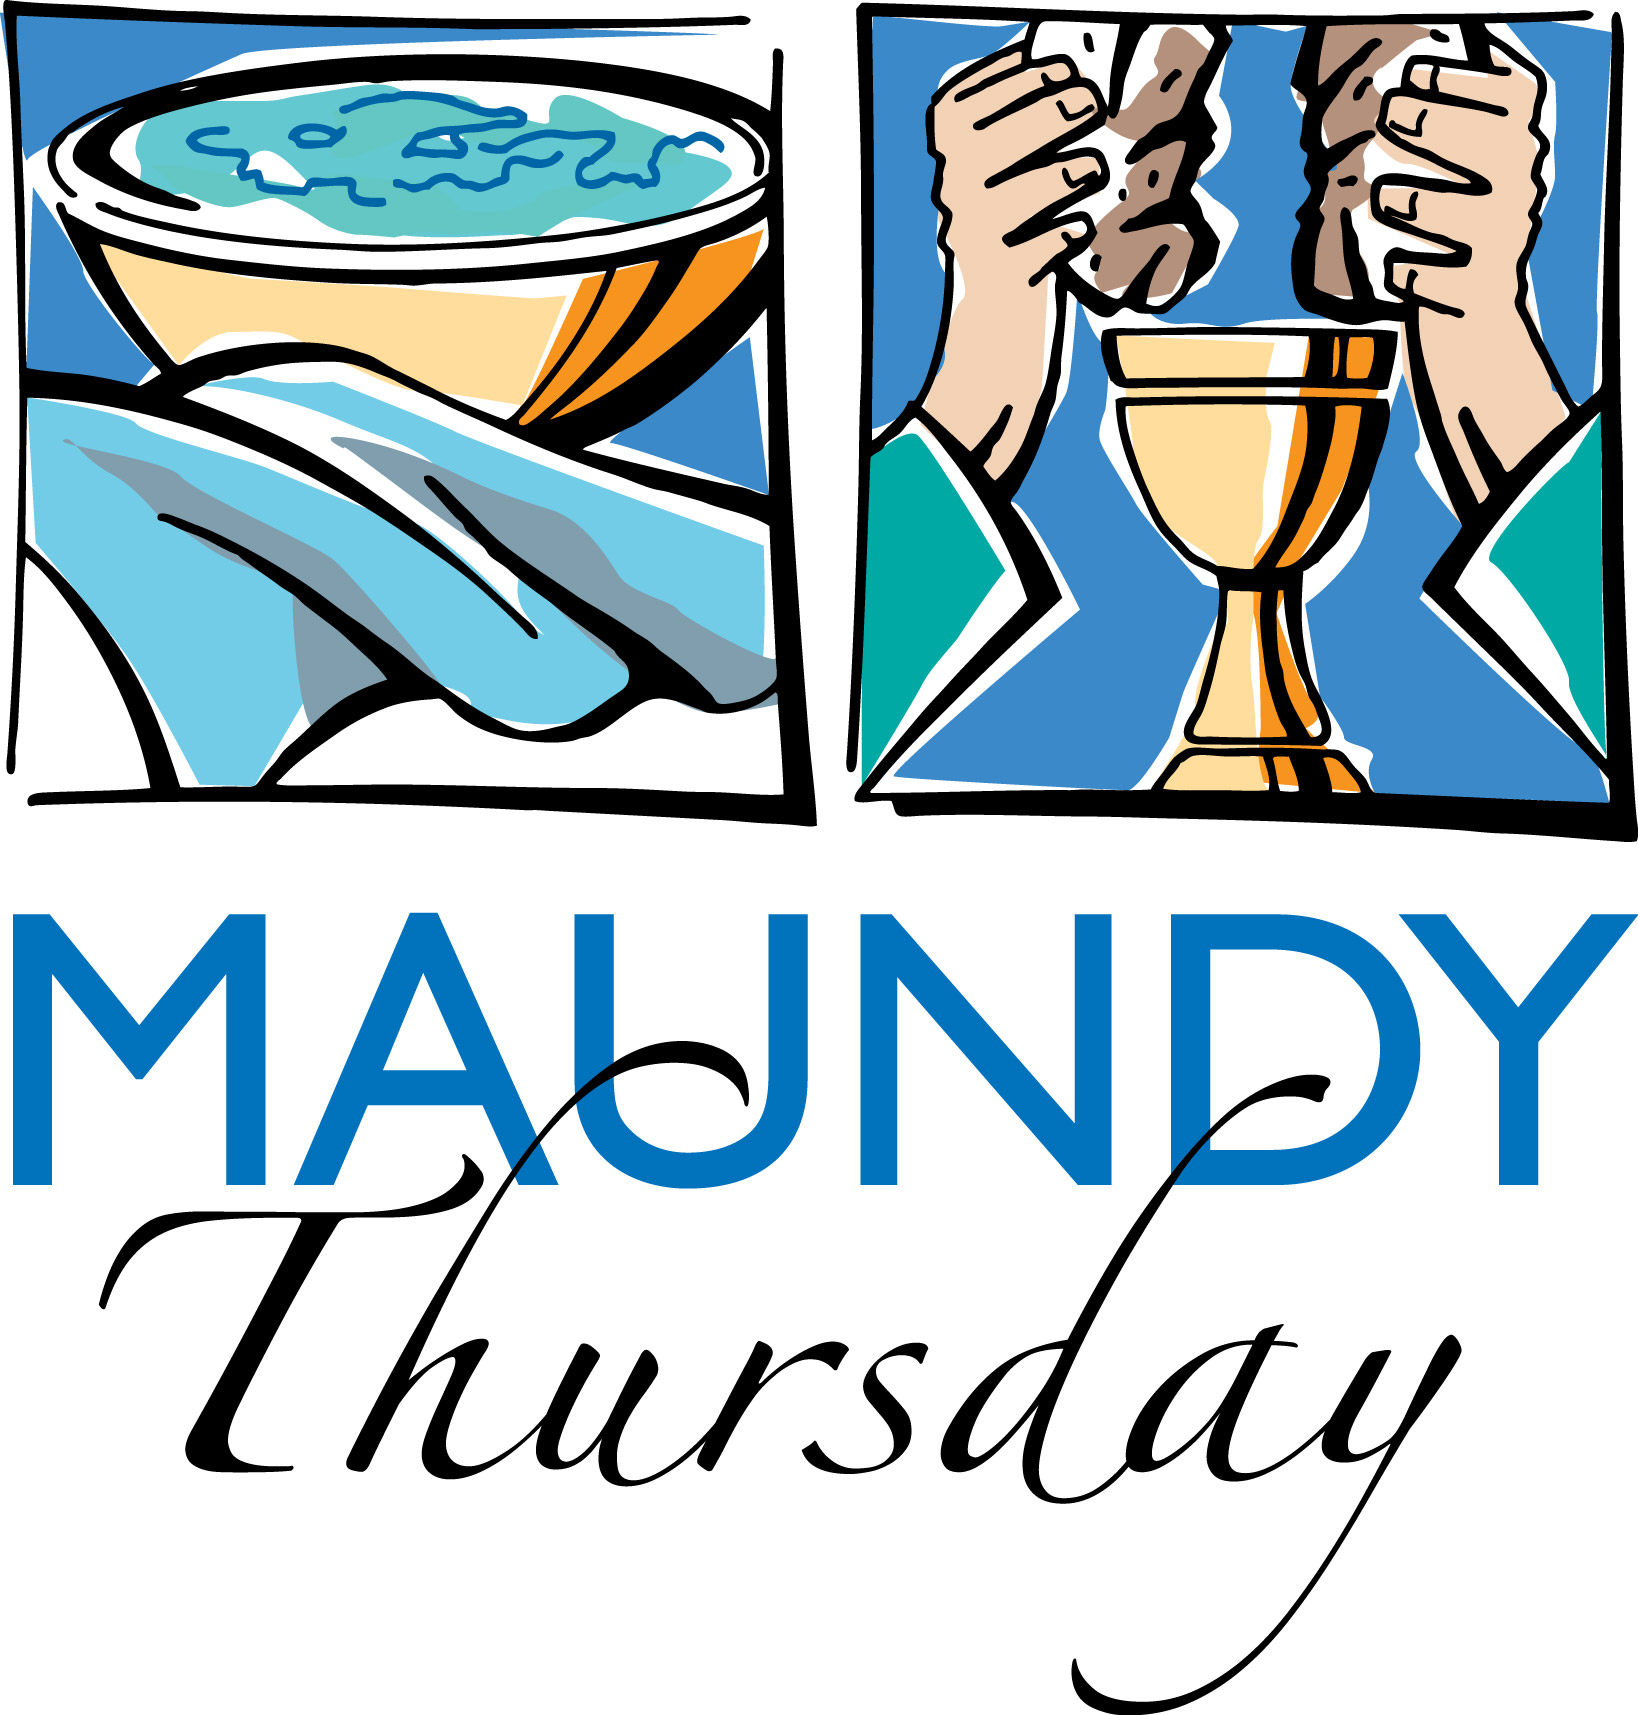 ... Maundy Thursday Clipart; Maundy Clipart | Free Download Clip Art | Free Clip Art | on .